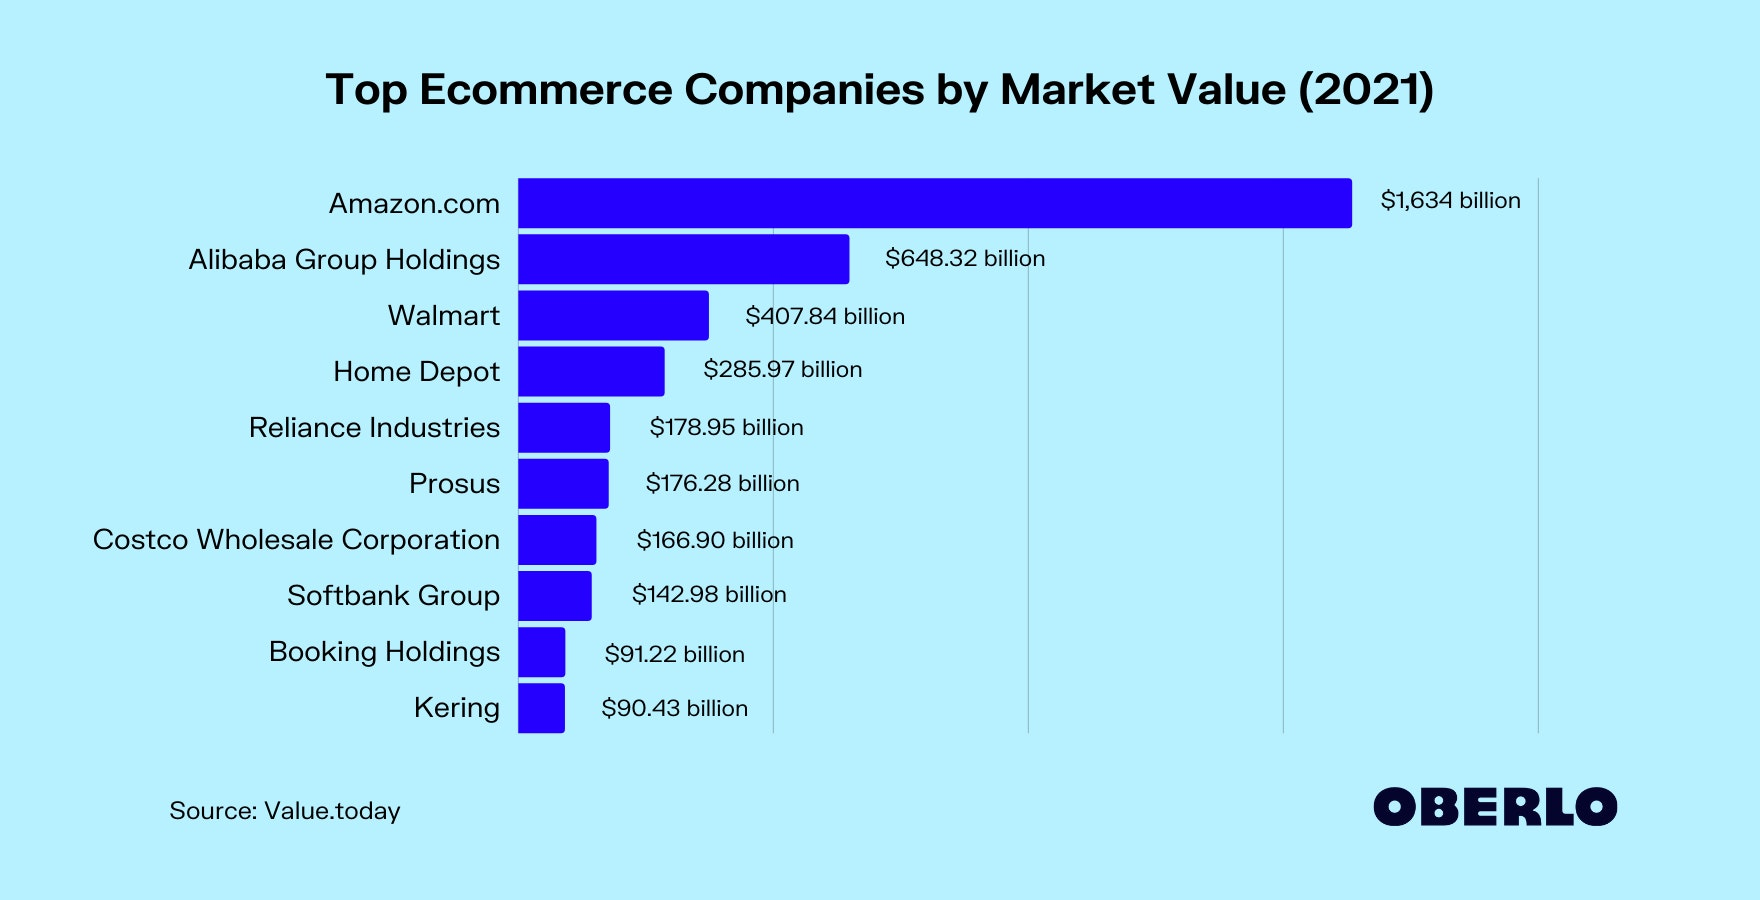 Chart of Top Ecommerce Companies by Market Value (2021)